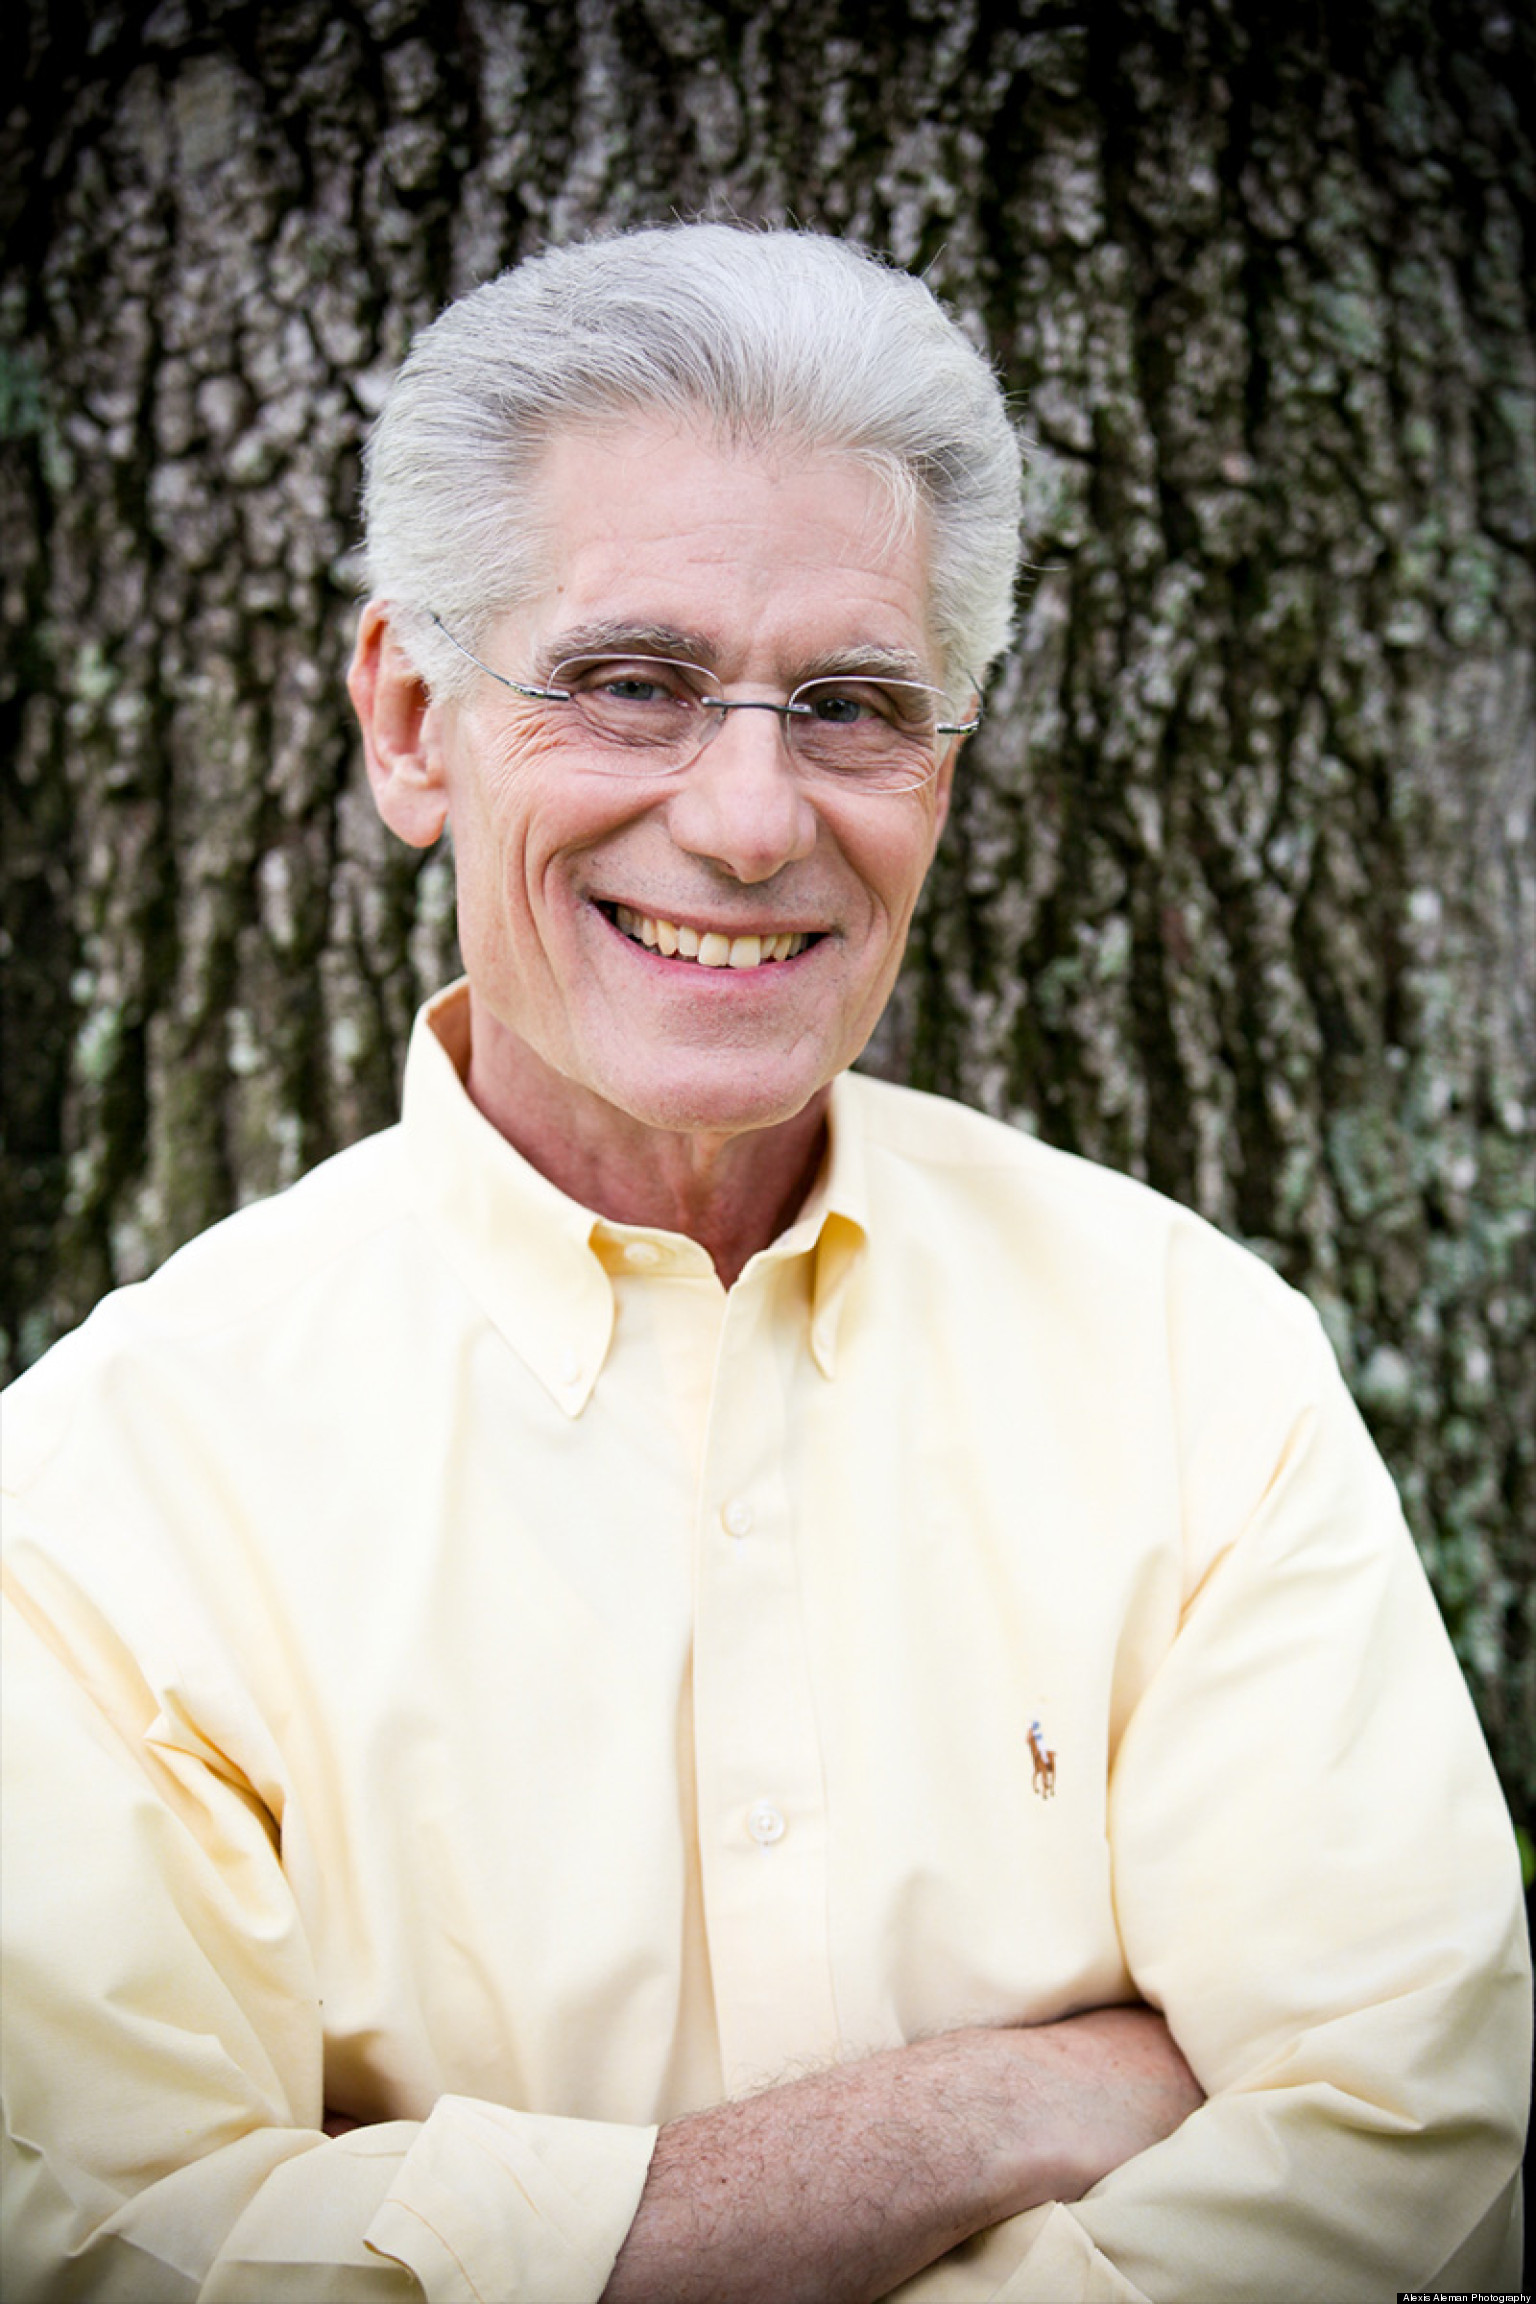 Dr. Brian Weiss On The Patient Who Convinced Him There Is An ...